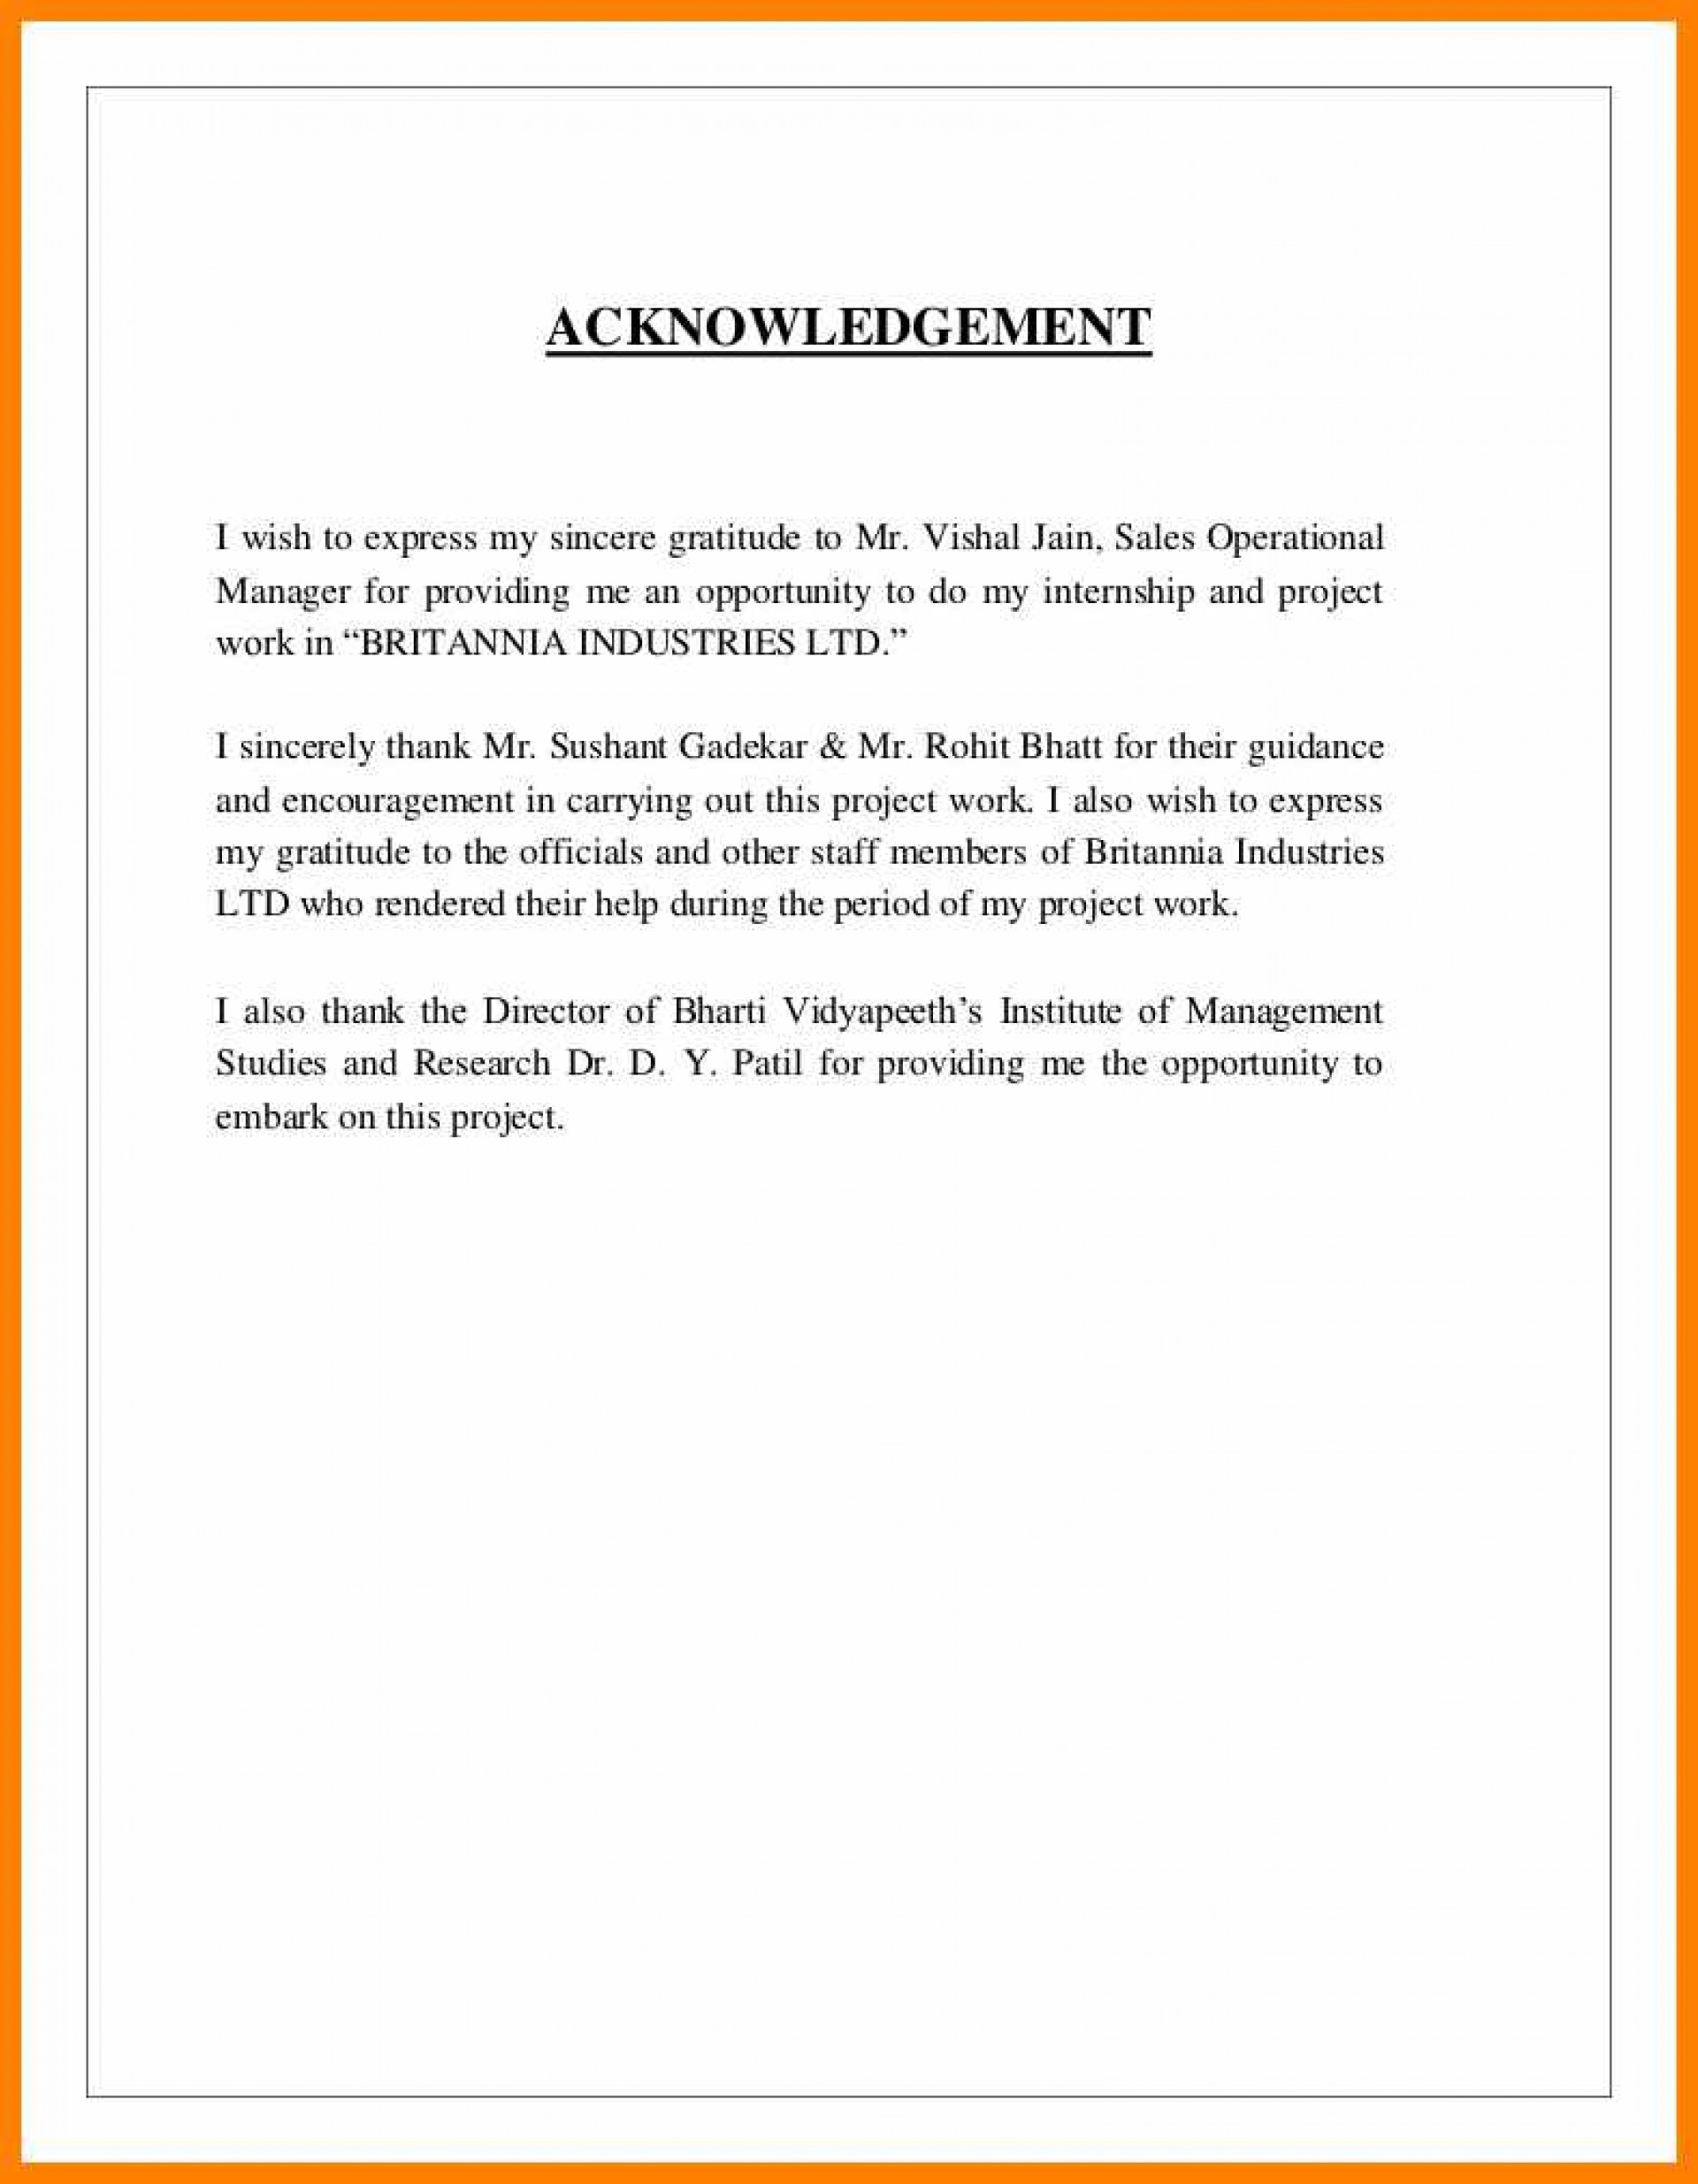 002 Acknowledgment Examples Uncategorized Acknowledgement For Internship Report Essential Sample Research Paper Staggering Doc In A 1920